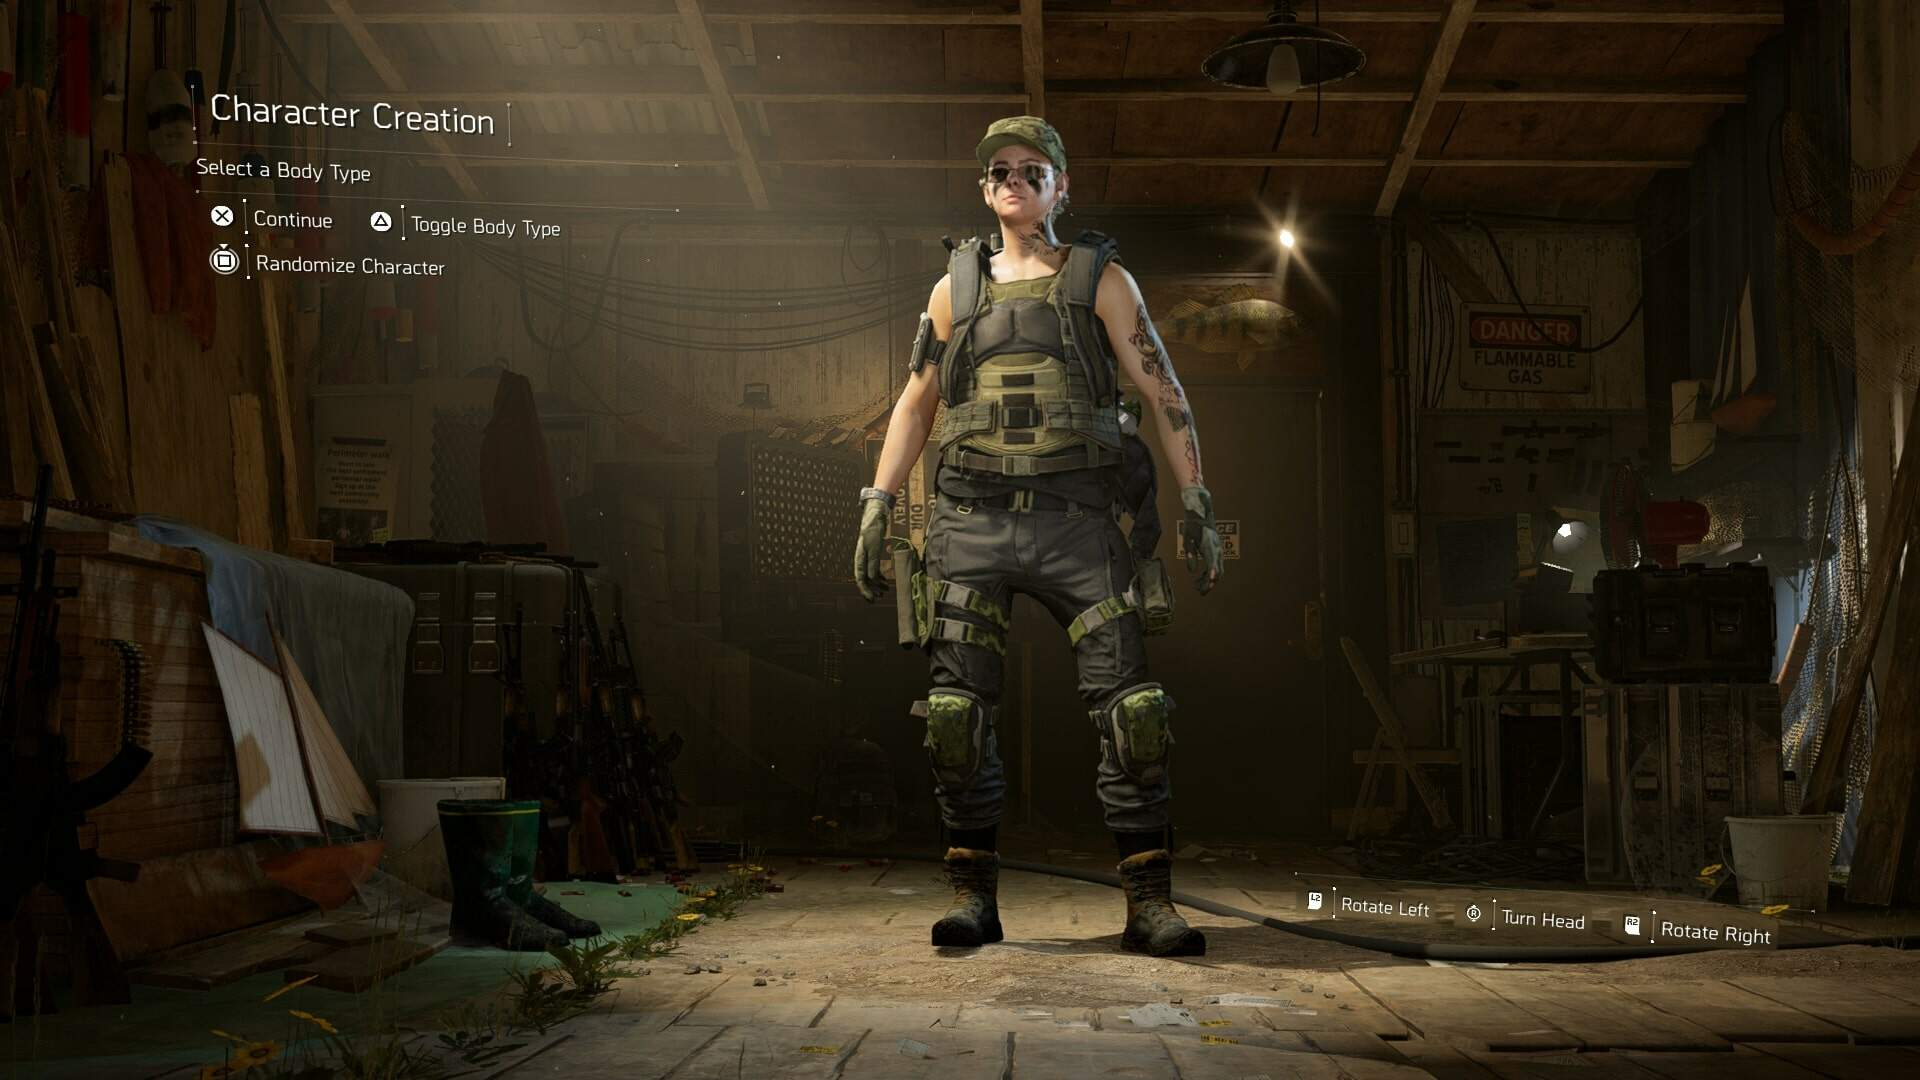 The Division 2 Character Creator - Tattoos, Customization, Can You Change Your Character in The Division 2?